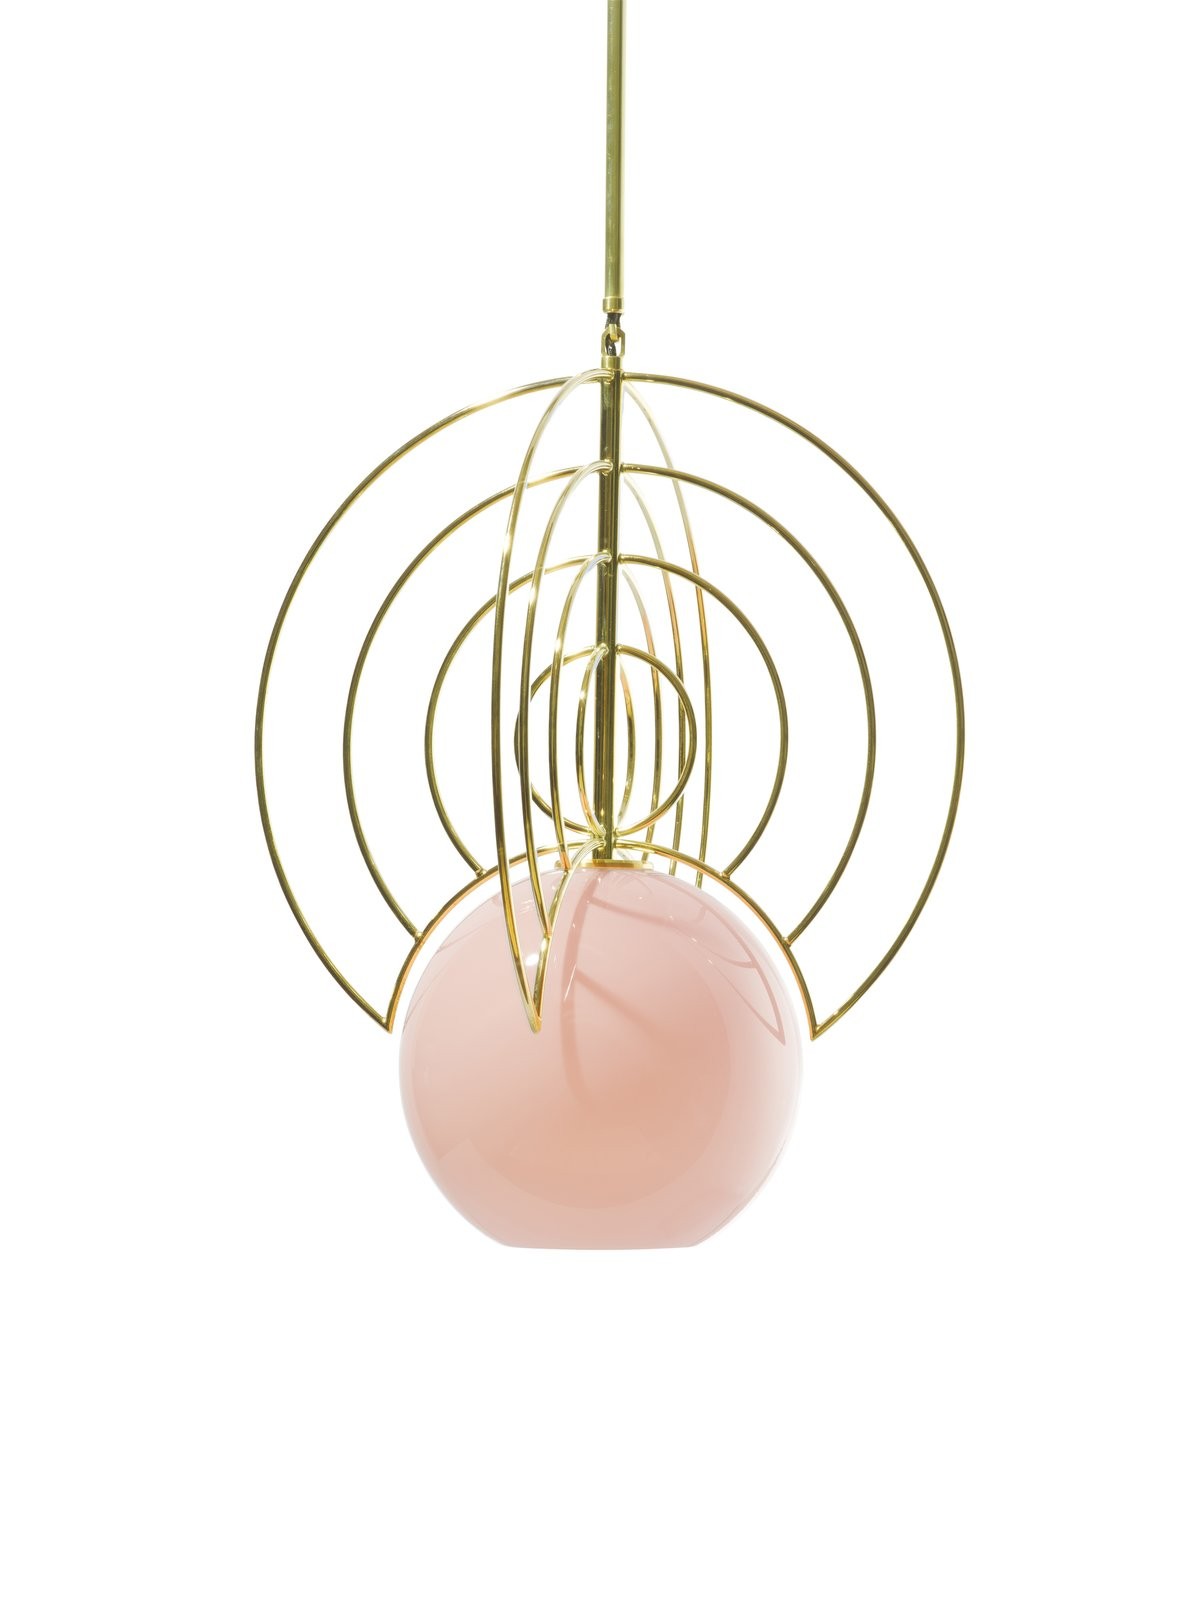 Aeneas light (2017) Iacoli & McAllister To make this recently debuted  pendant, a glass orb is hand-blown by frequent collaborator John Hogan, and the fixture is assembled,  wired, UL-listed, and shipped from the company's Seattle studio.